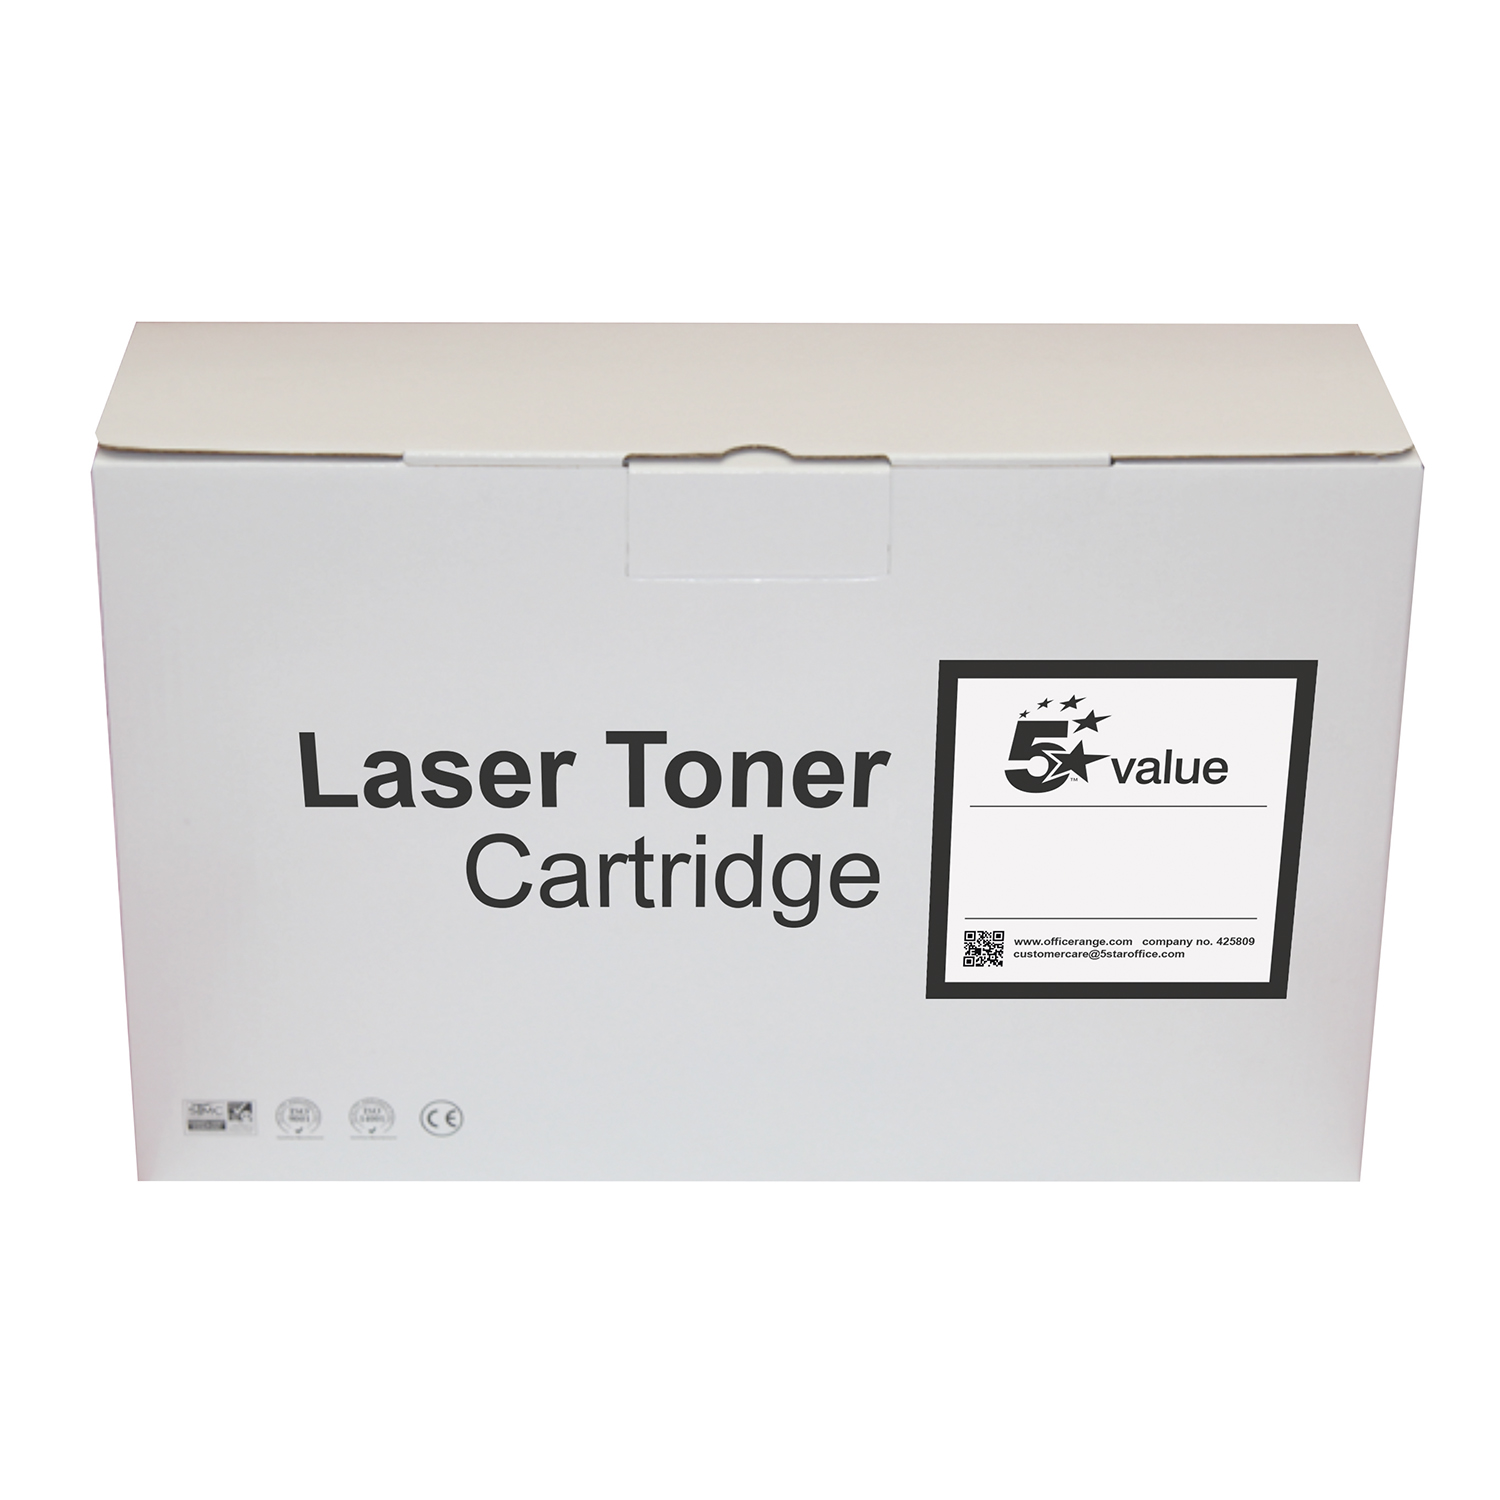 5 Star Value Remanufactured Laser Toner Cartridge Page Life 1600pp Black HP No. 85A CE285A Alternative